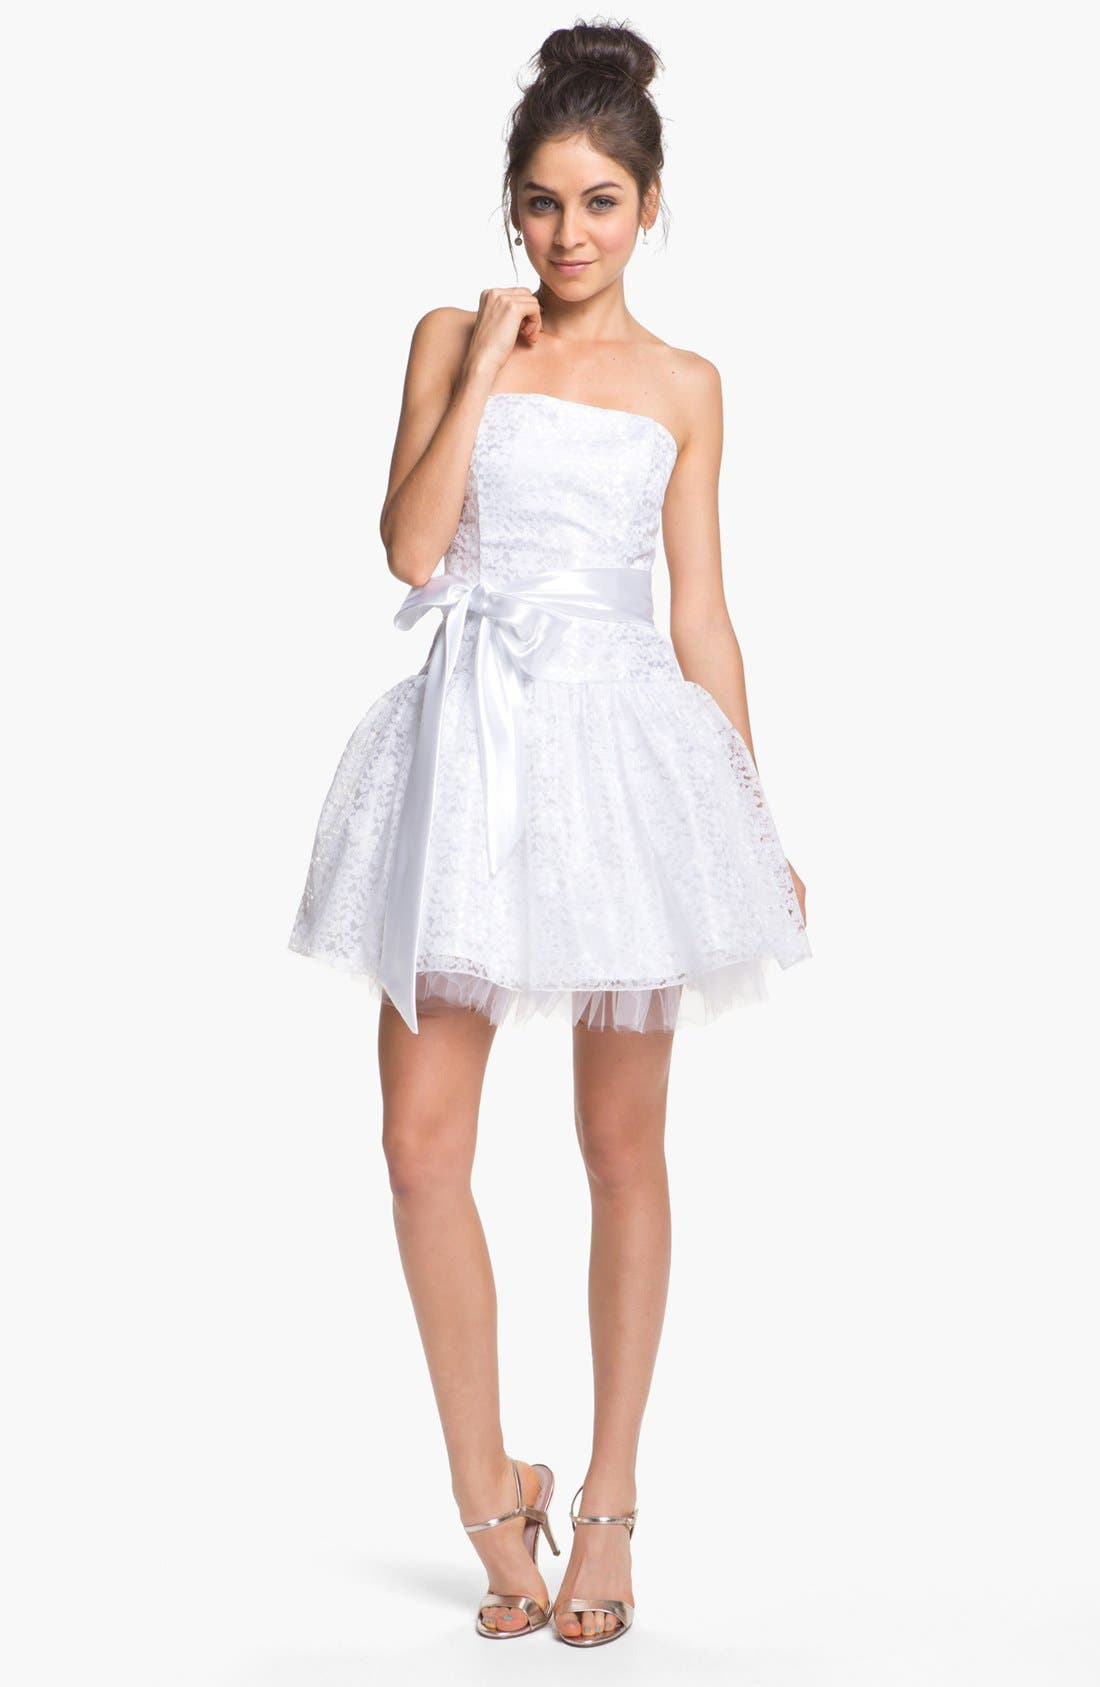 Alternate Image 1 Selected - Jessica McClintock Strapless Lace & Tulle Dress